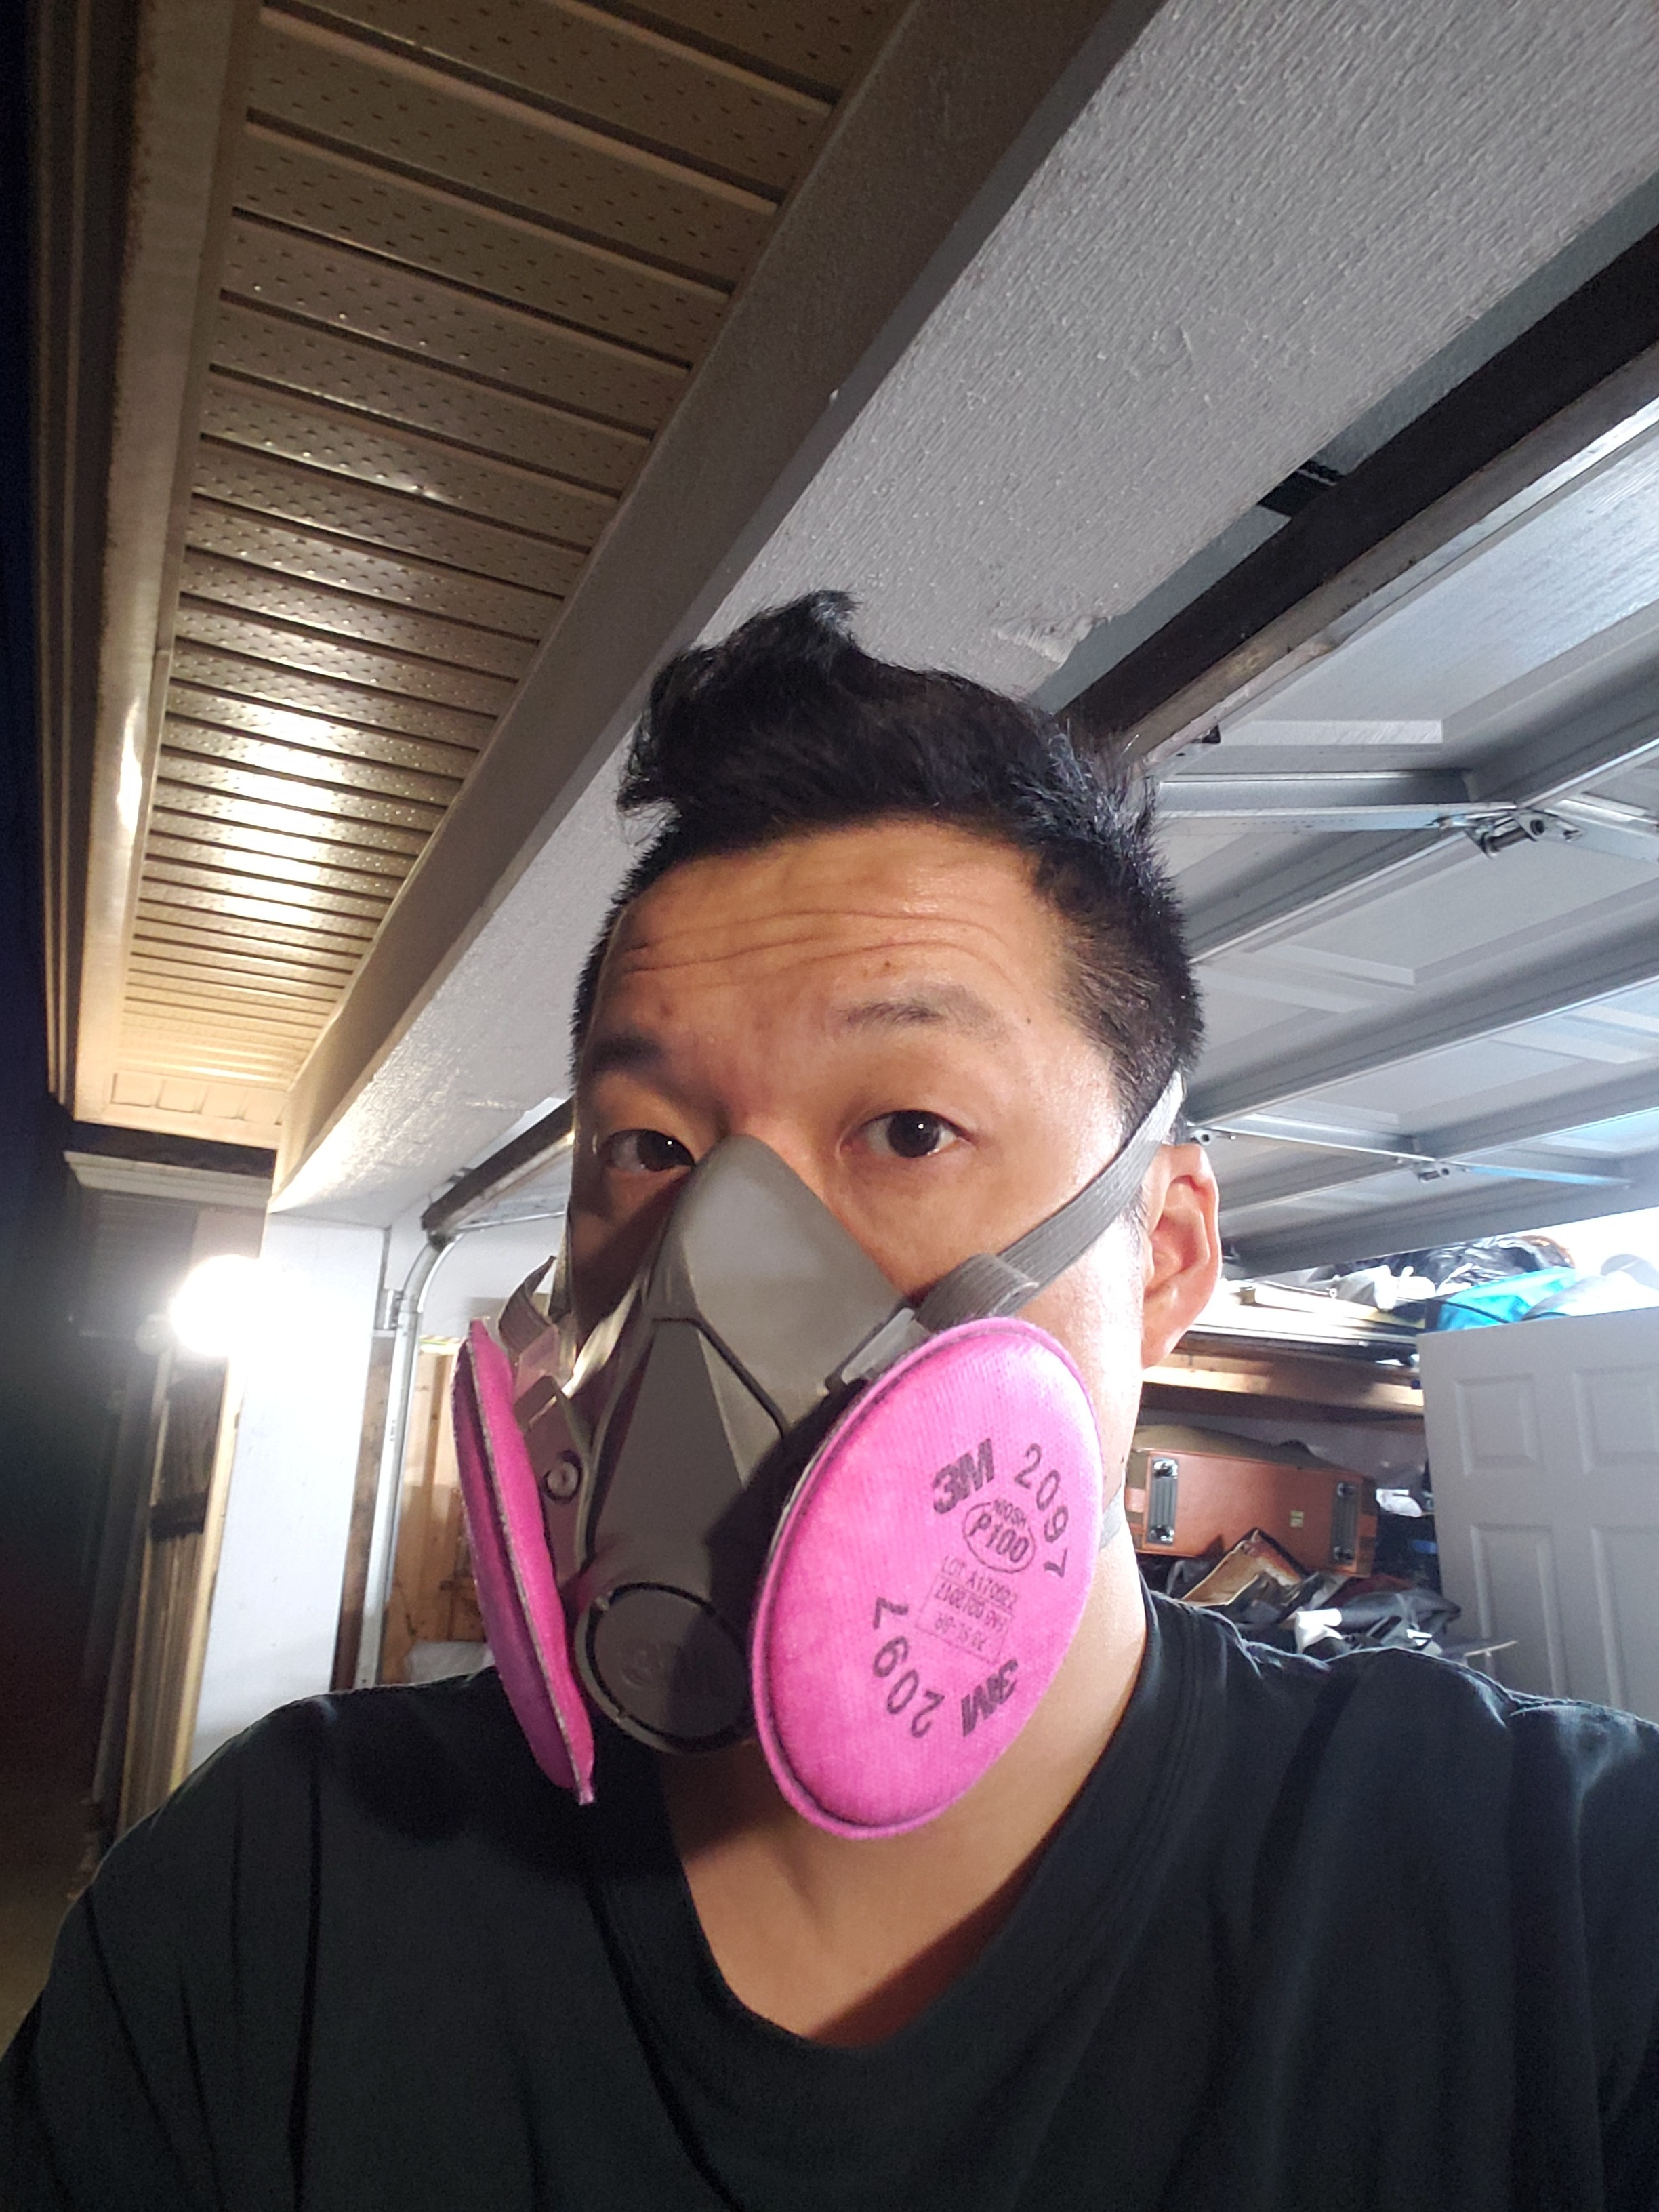 3M half mask respirator, ready for clear protective spray headlights